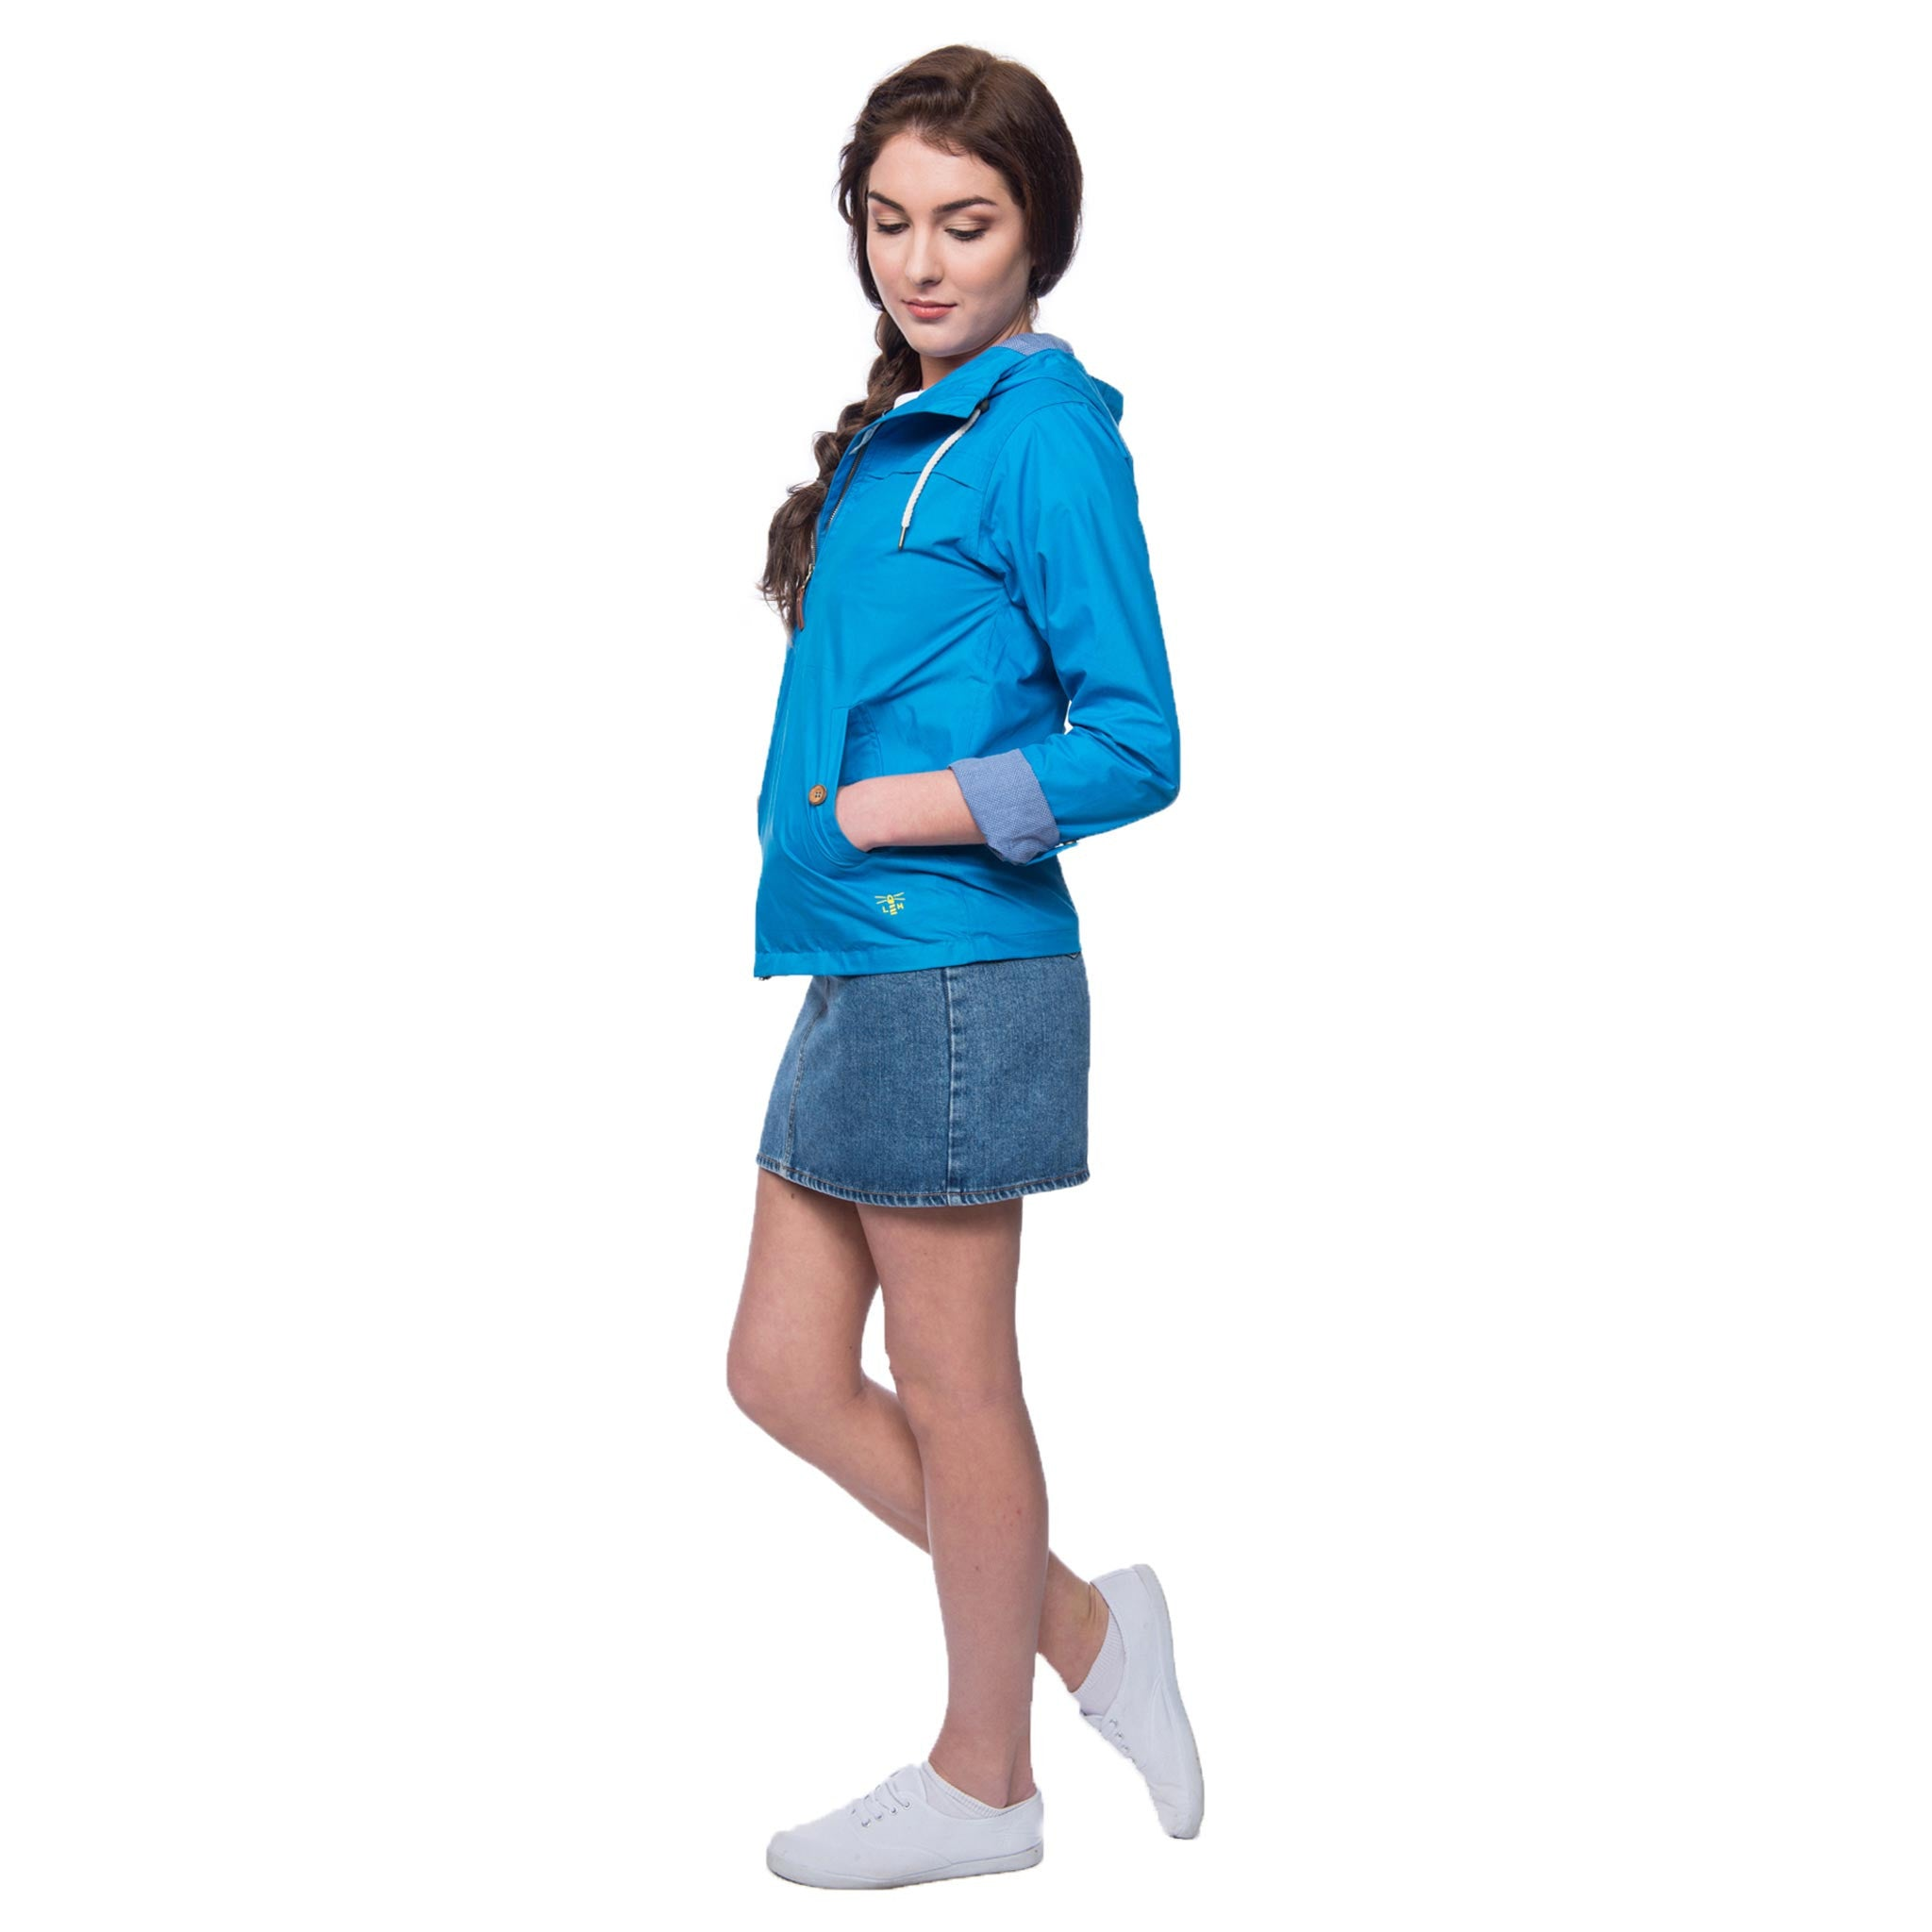 Lighthouse Wren Womens Rain Jacket in Blue